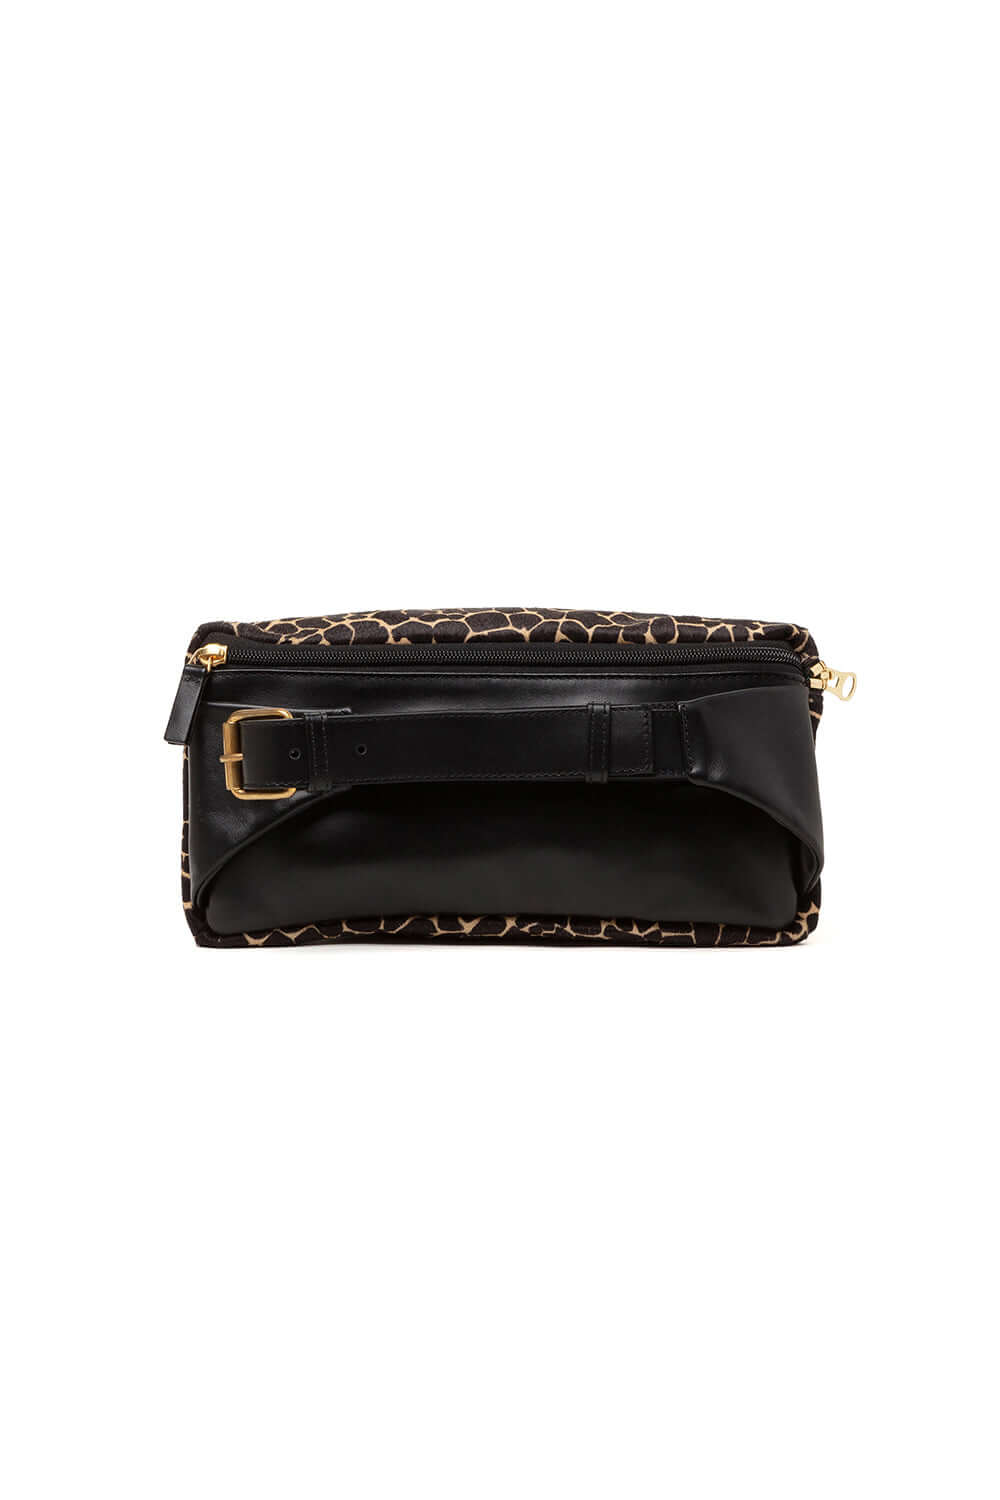 Fanny pack in giraffe printed leather